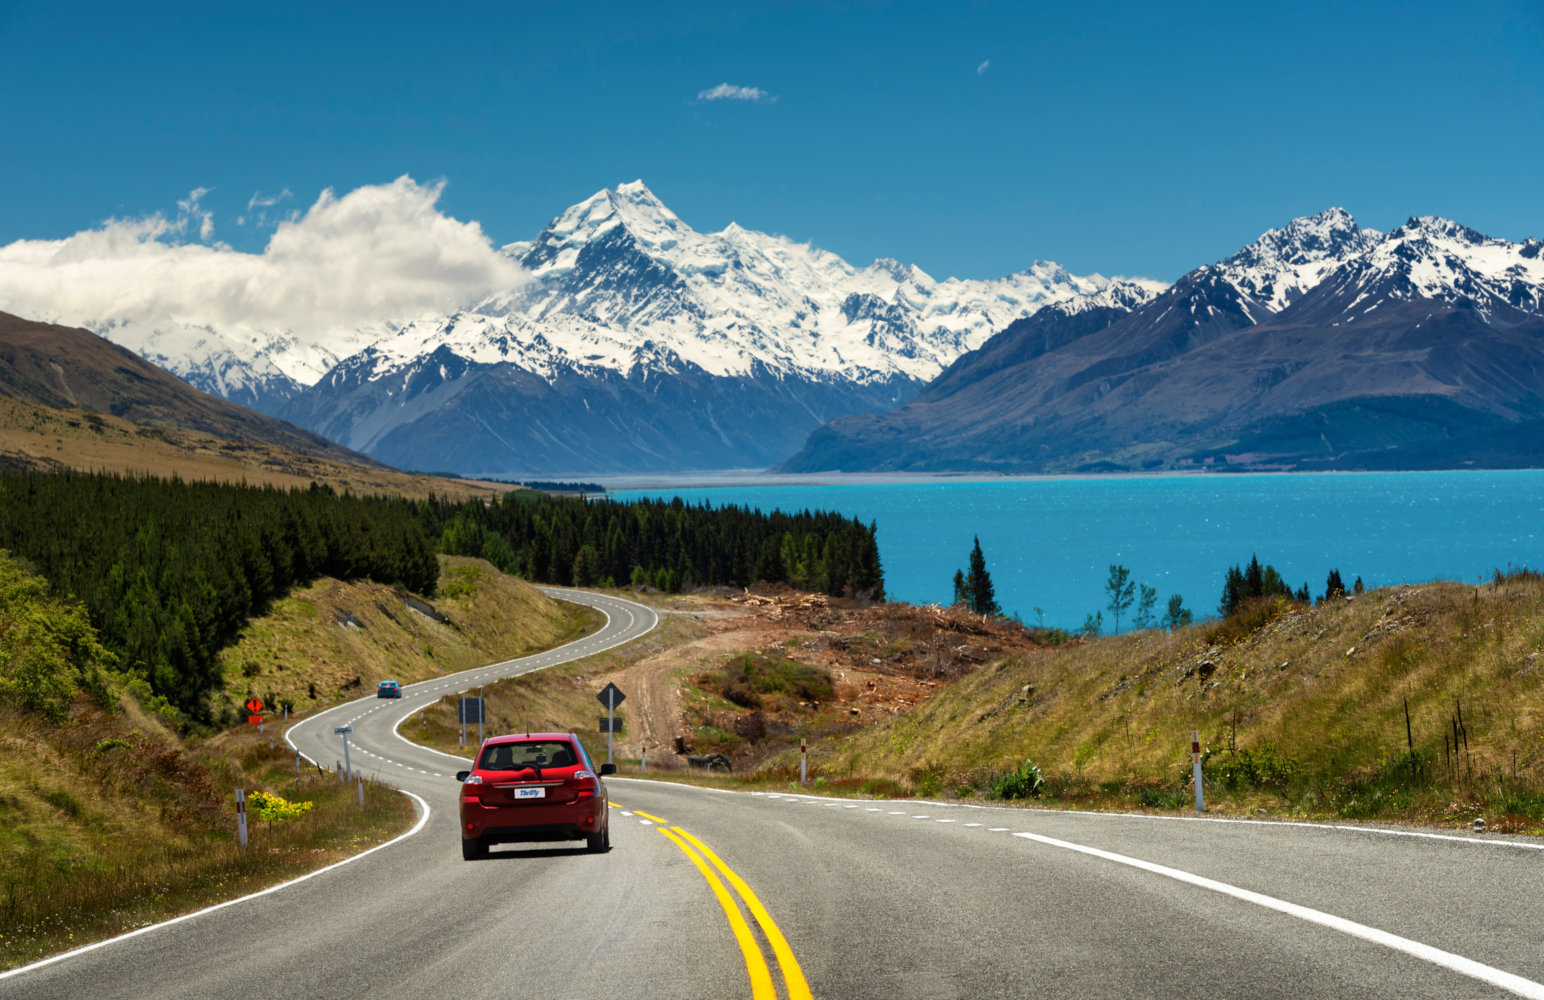 Red car on the road to Lake Pukaki and Aoraki / Mount Cook